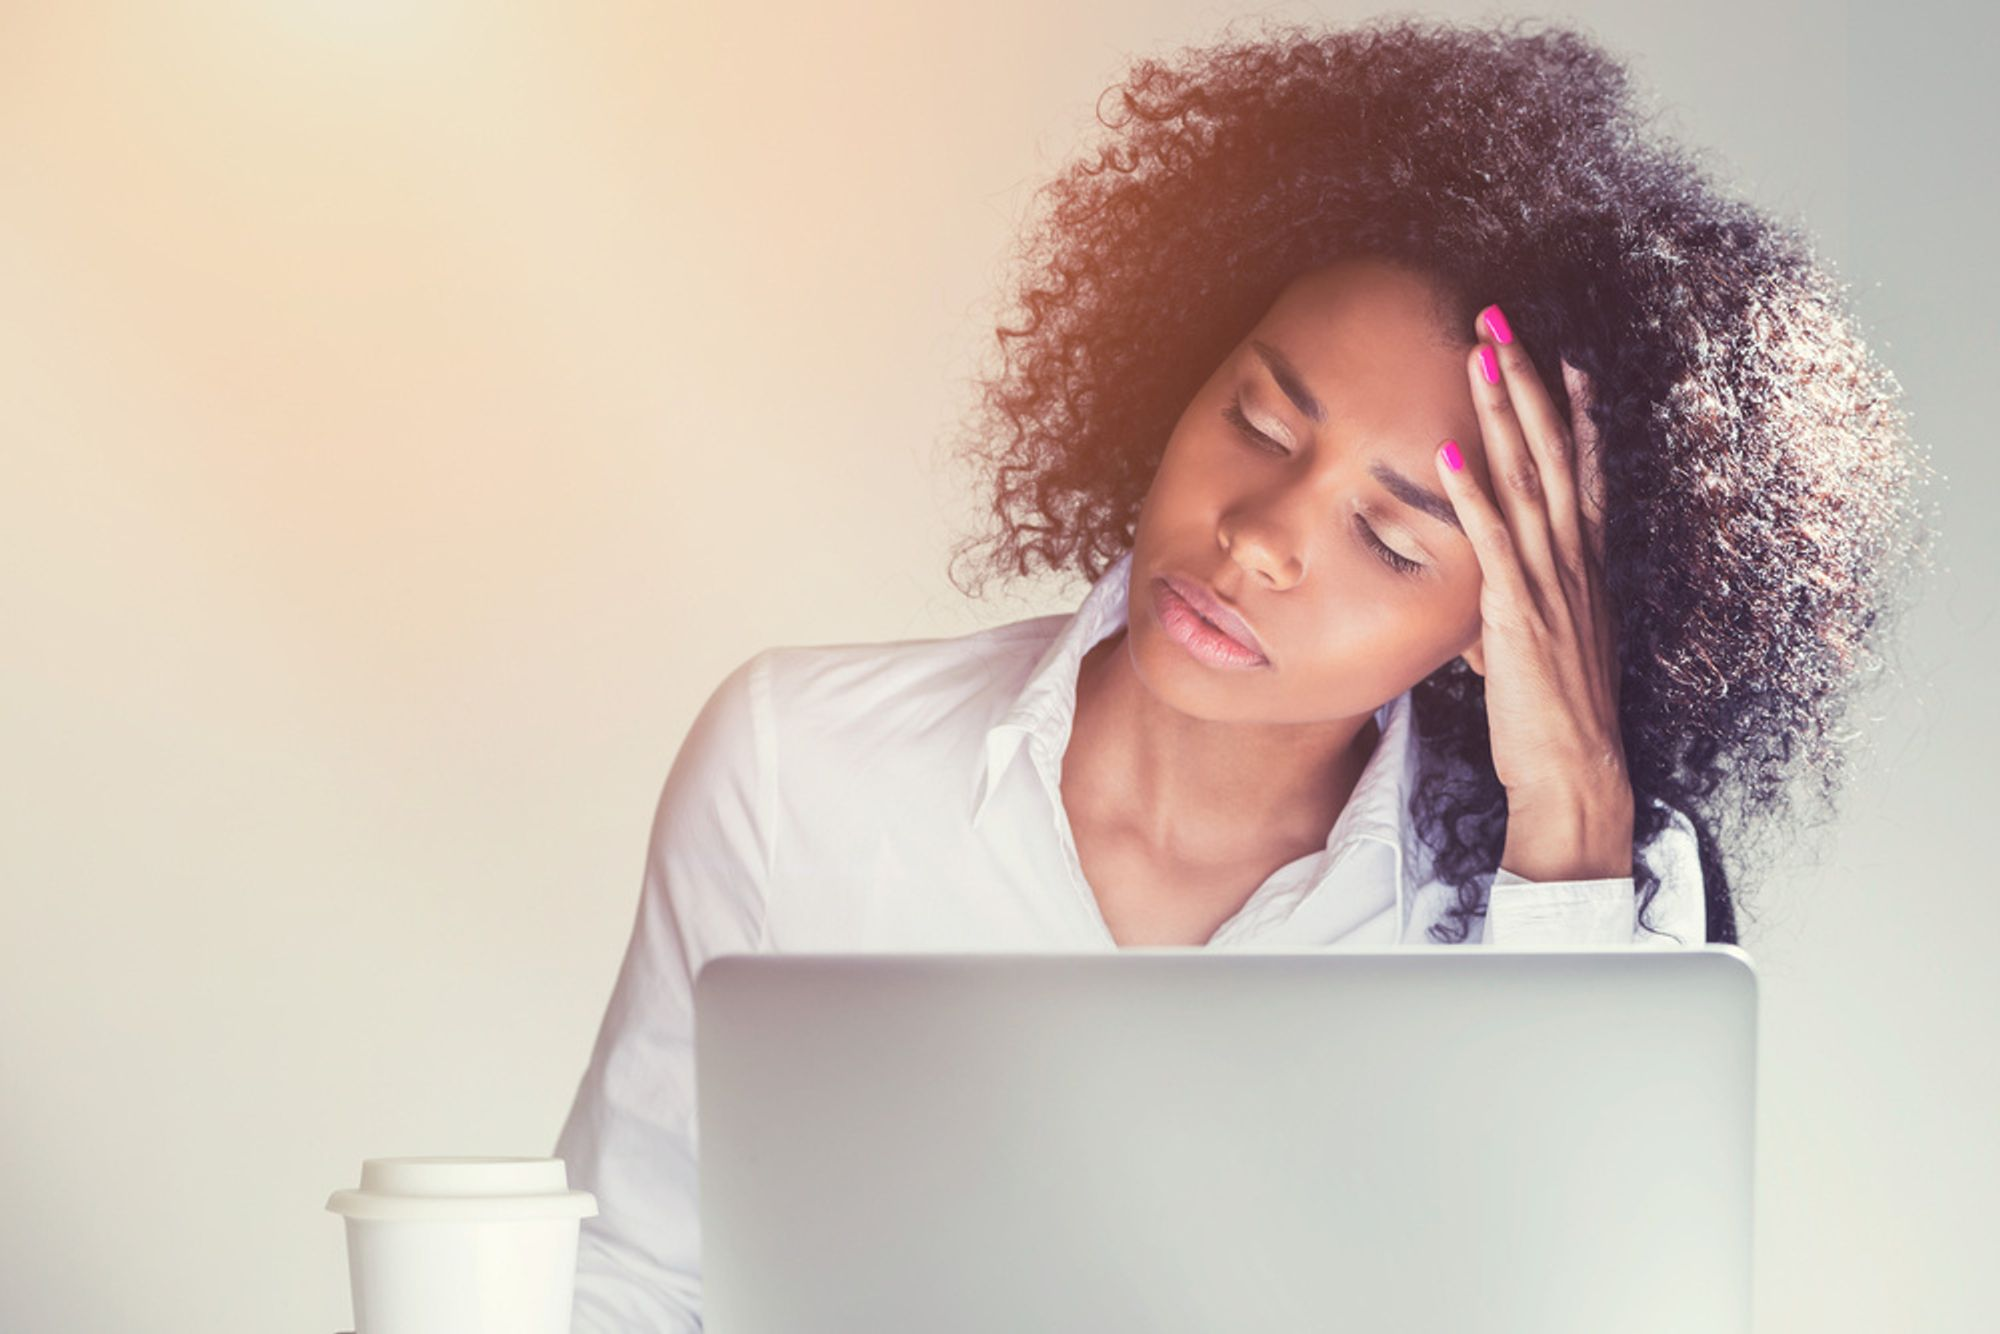 3 Tips To Combat Imposter Syndrome In The Workplace